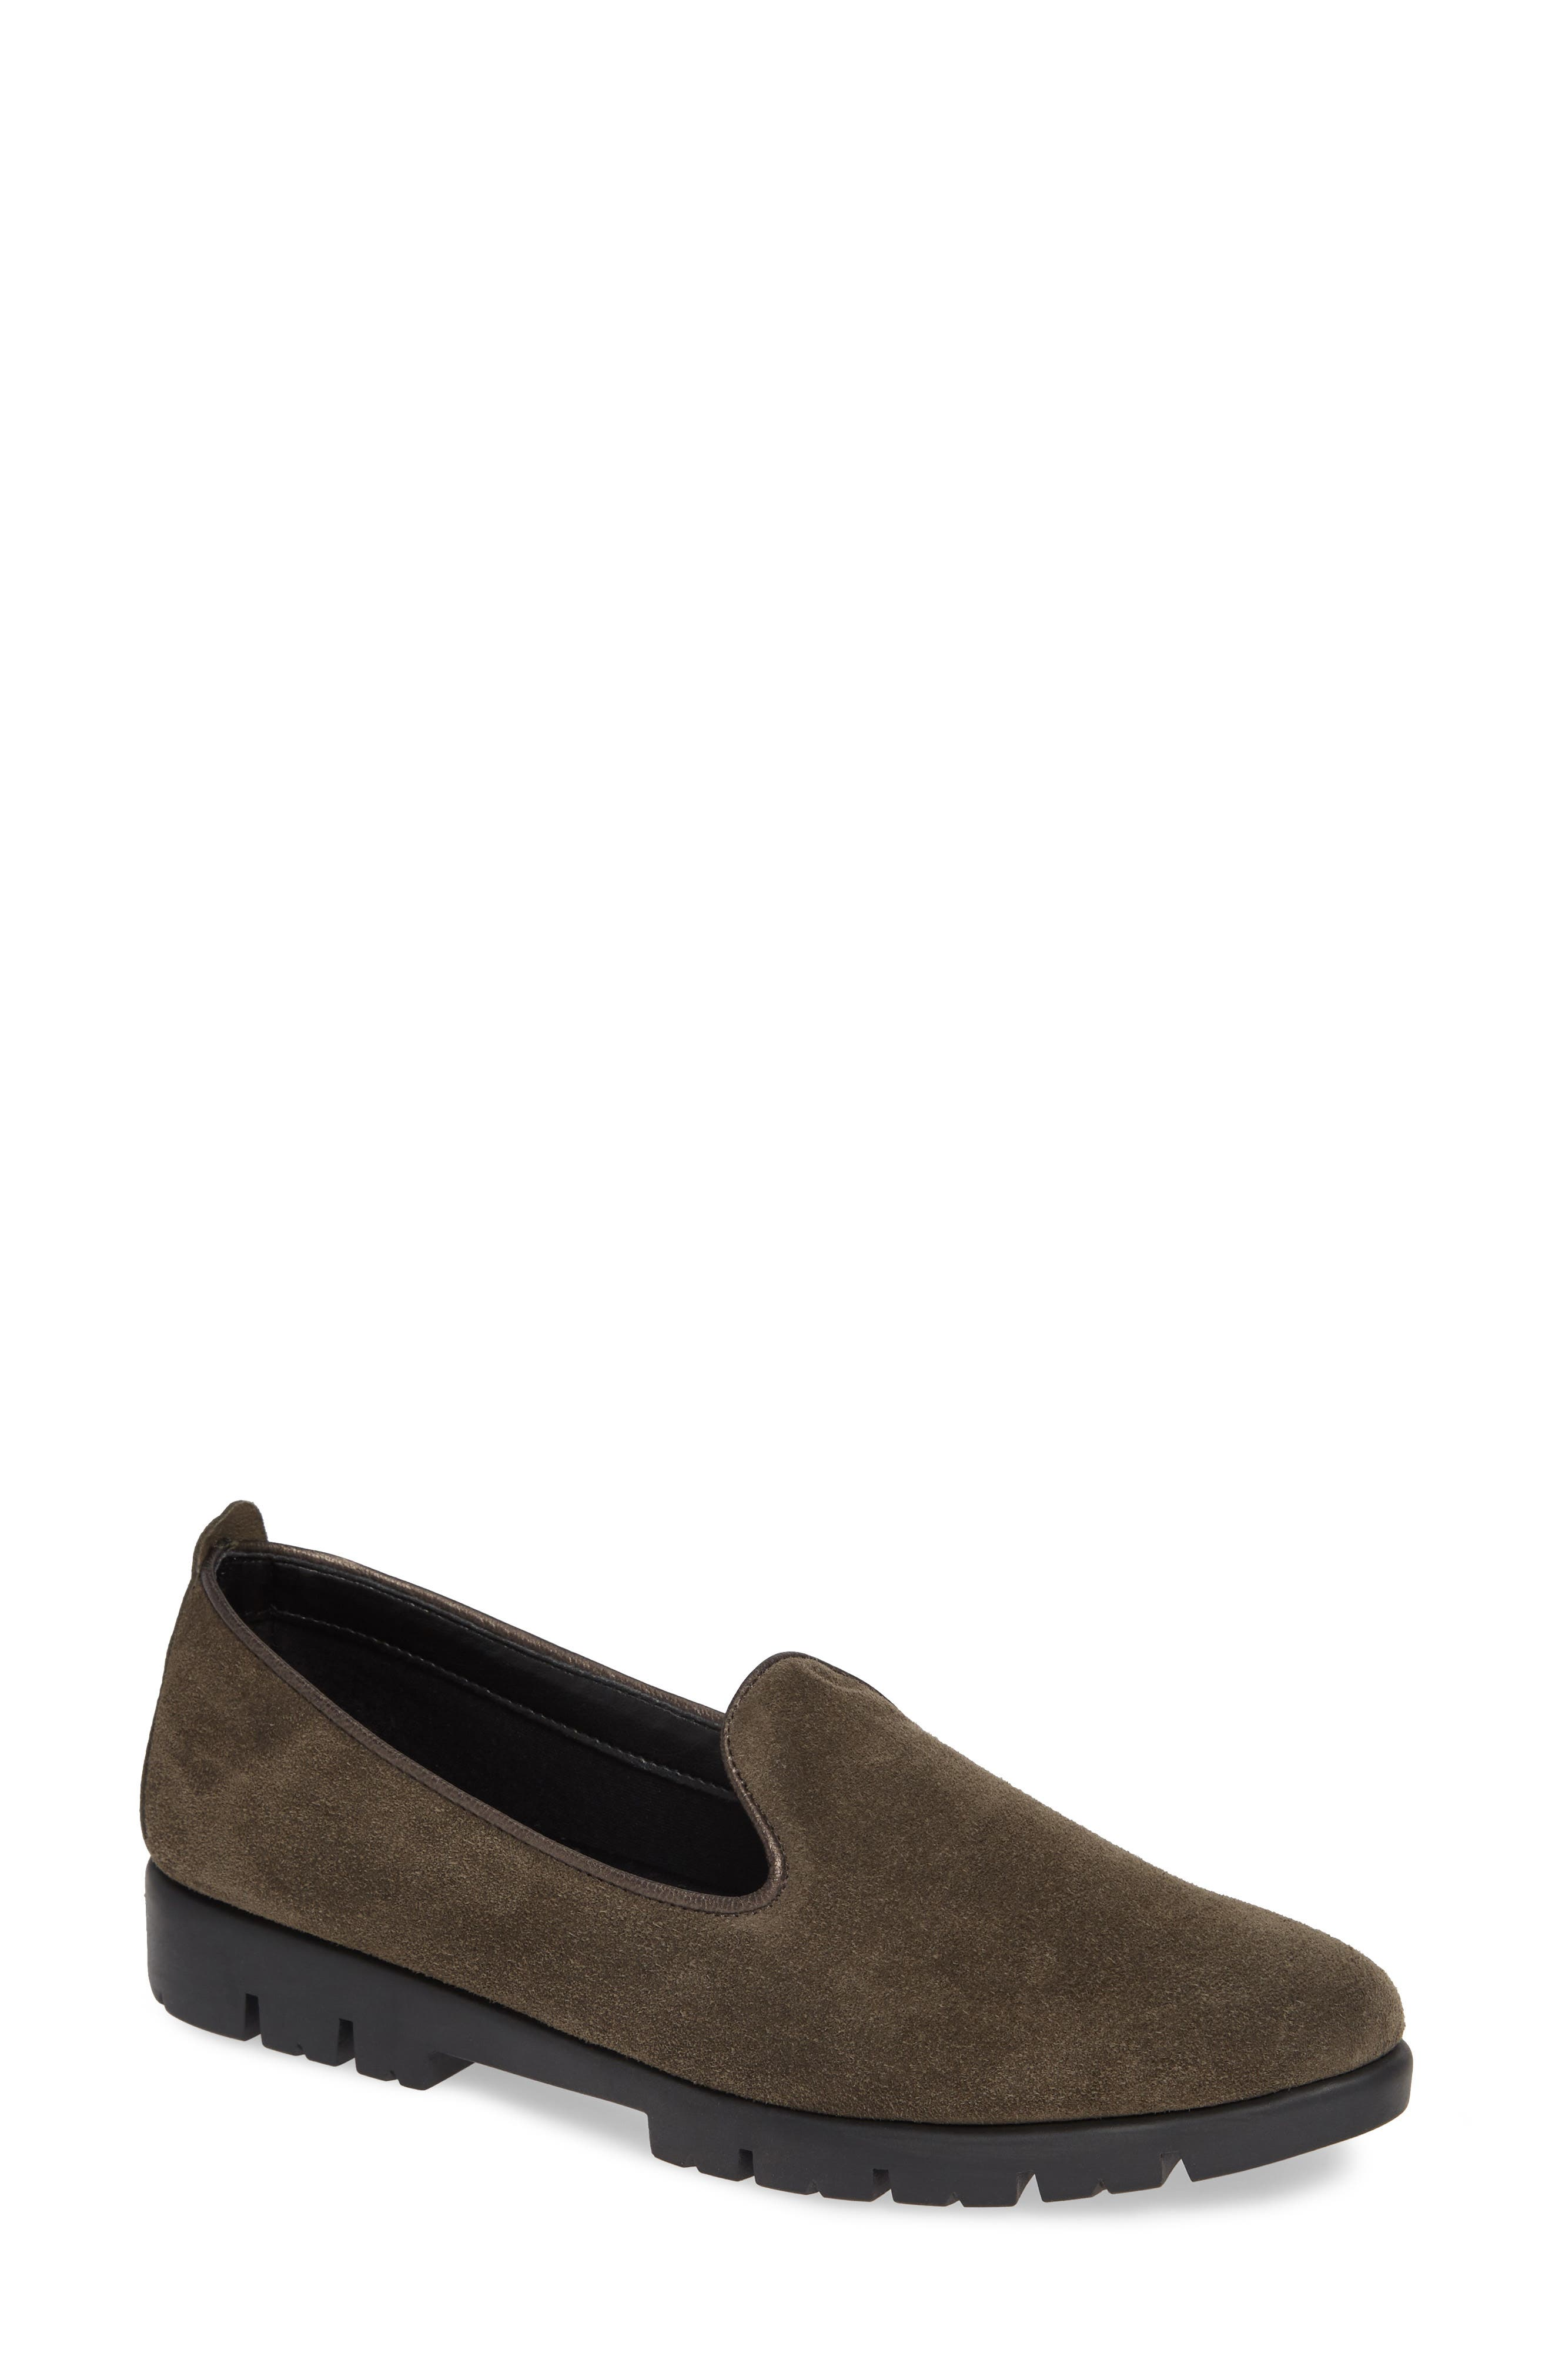 THE FLEXX Smokin' Hot Plush Loafer, Main, color, BROWN SUEDE